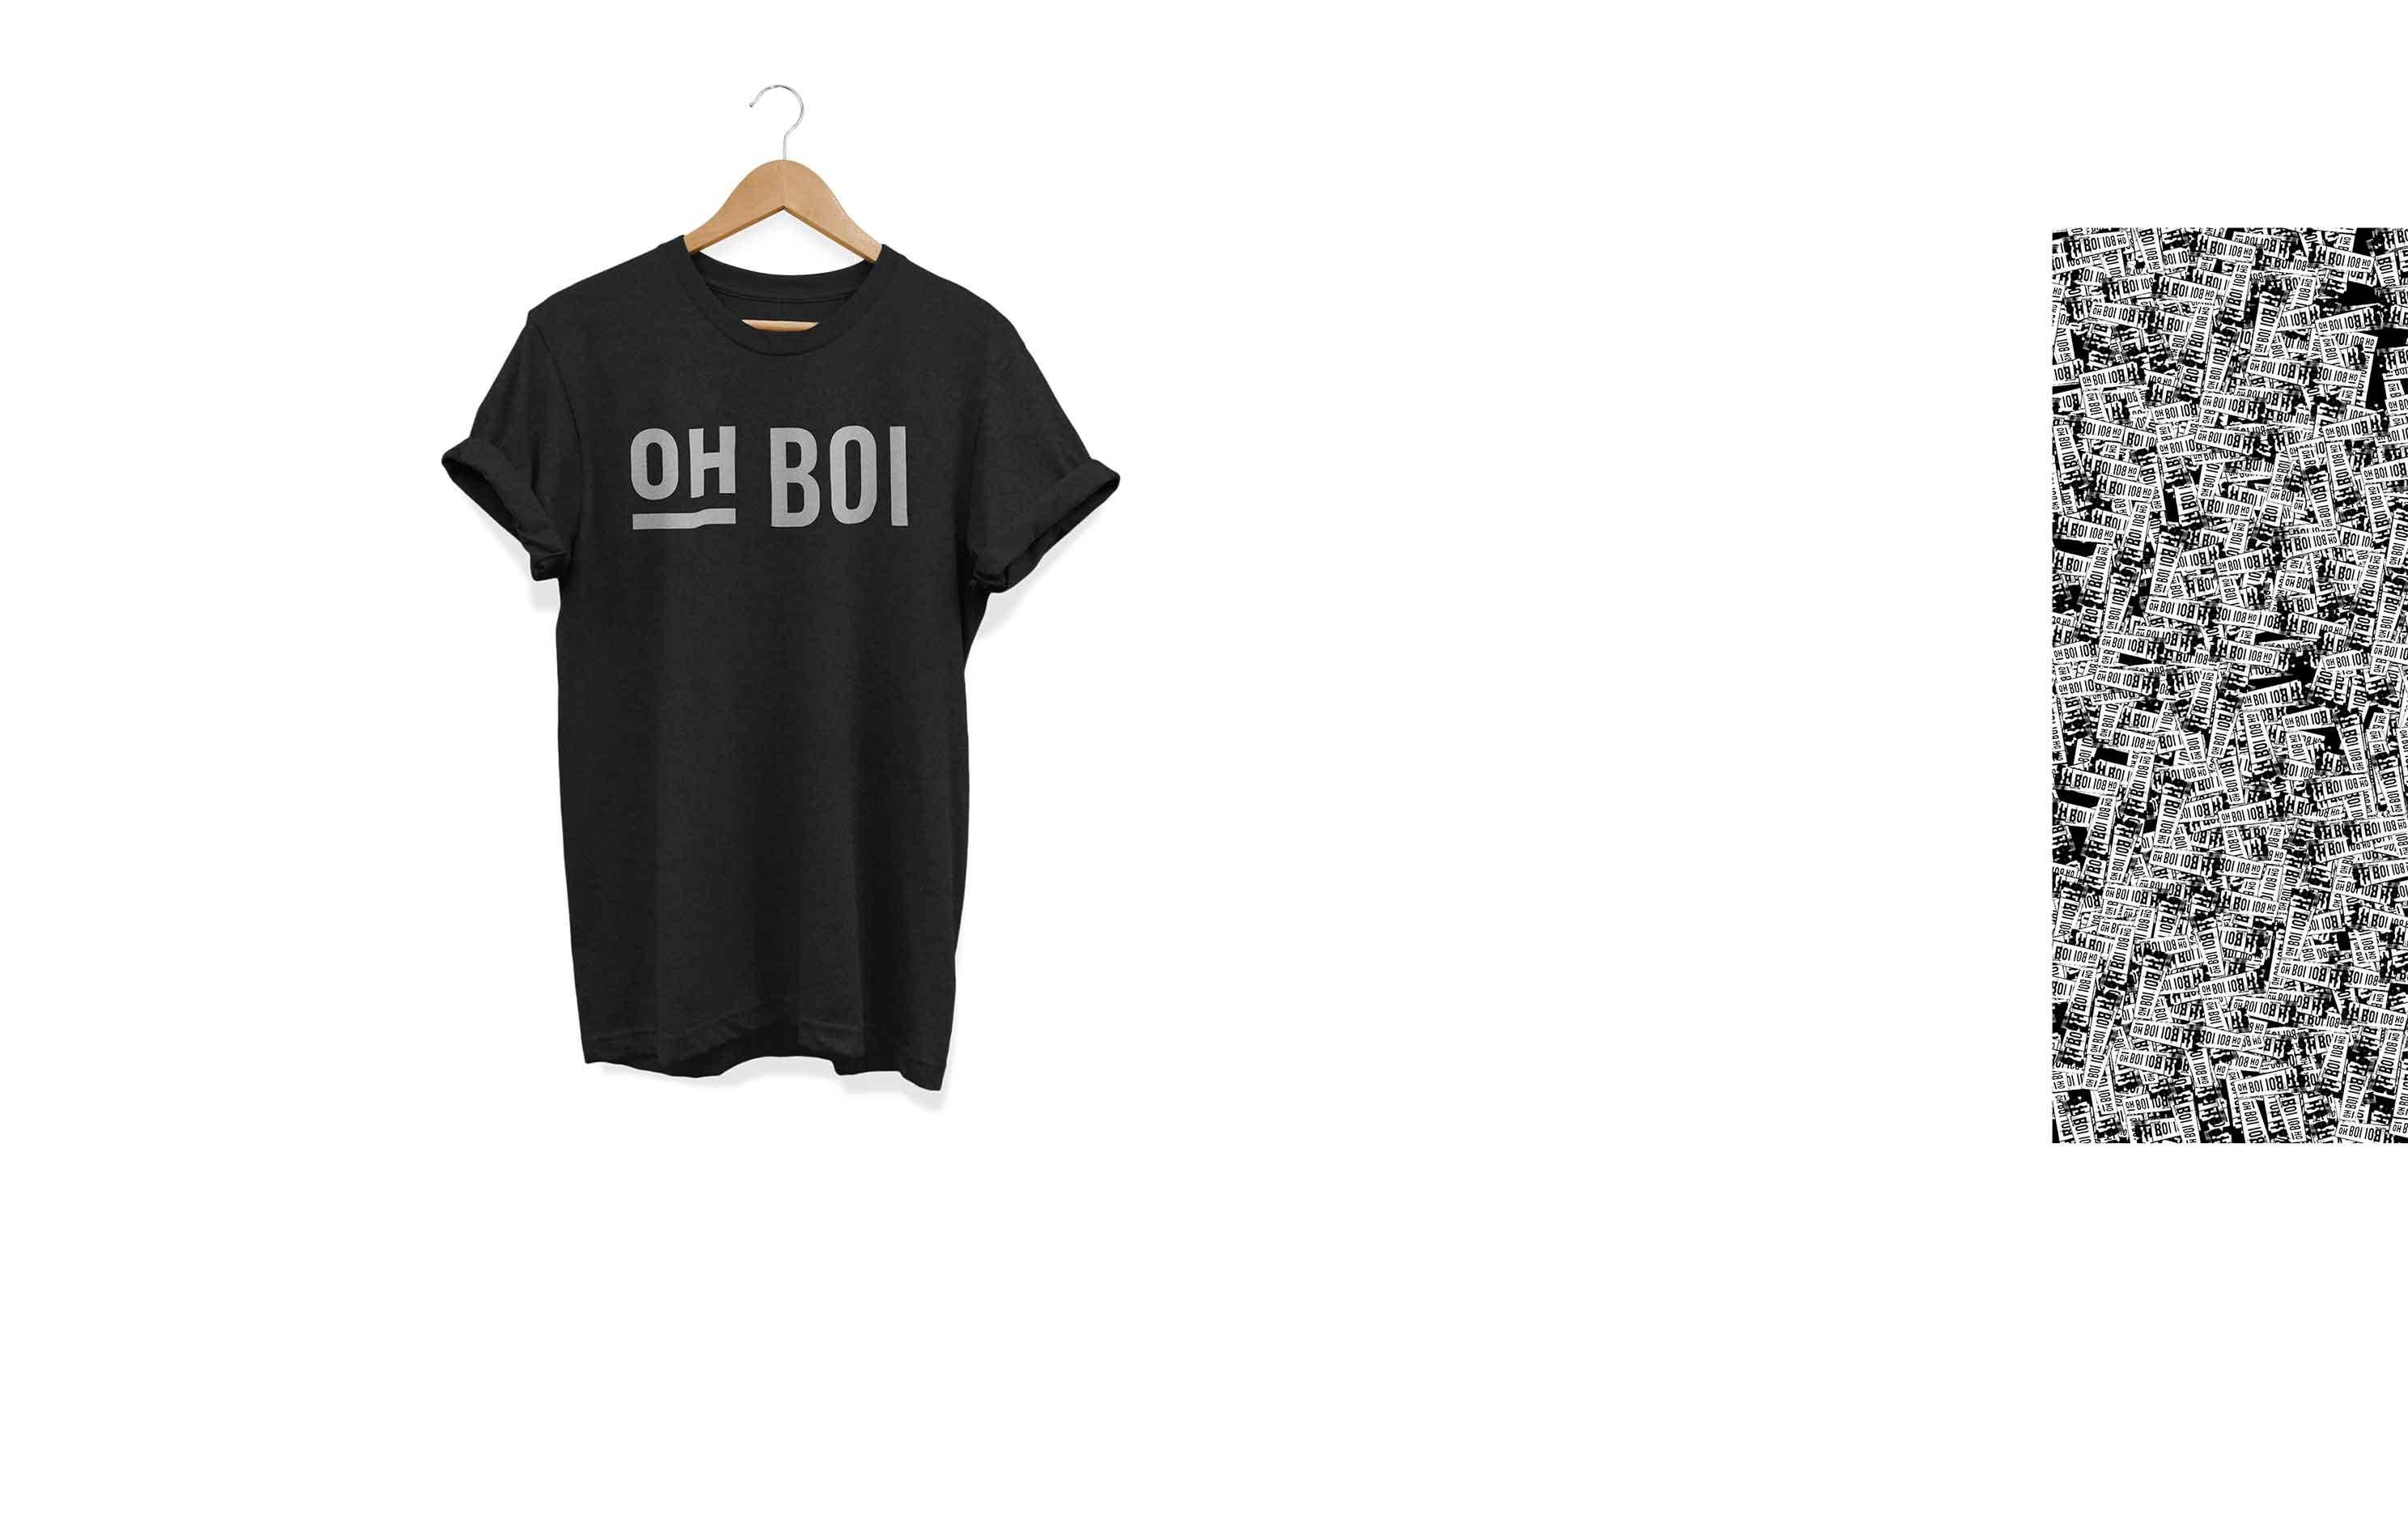 14-oh-boi-bar-food-augsburg-branding-design-t-shirt-front